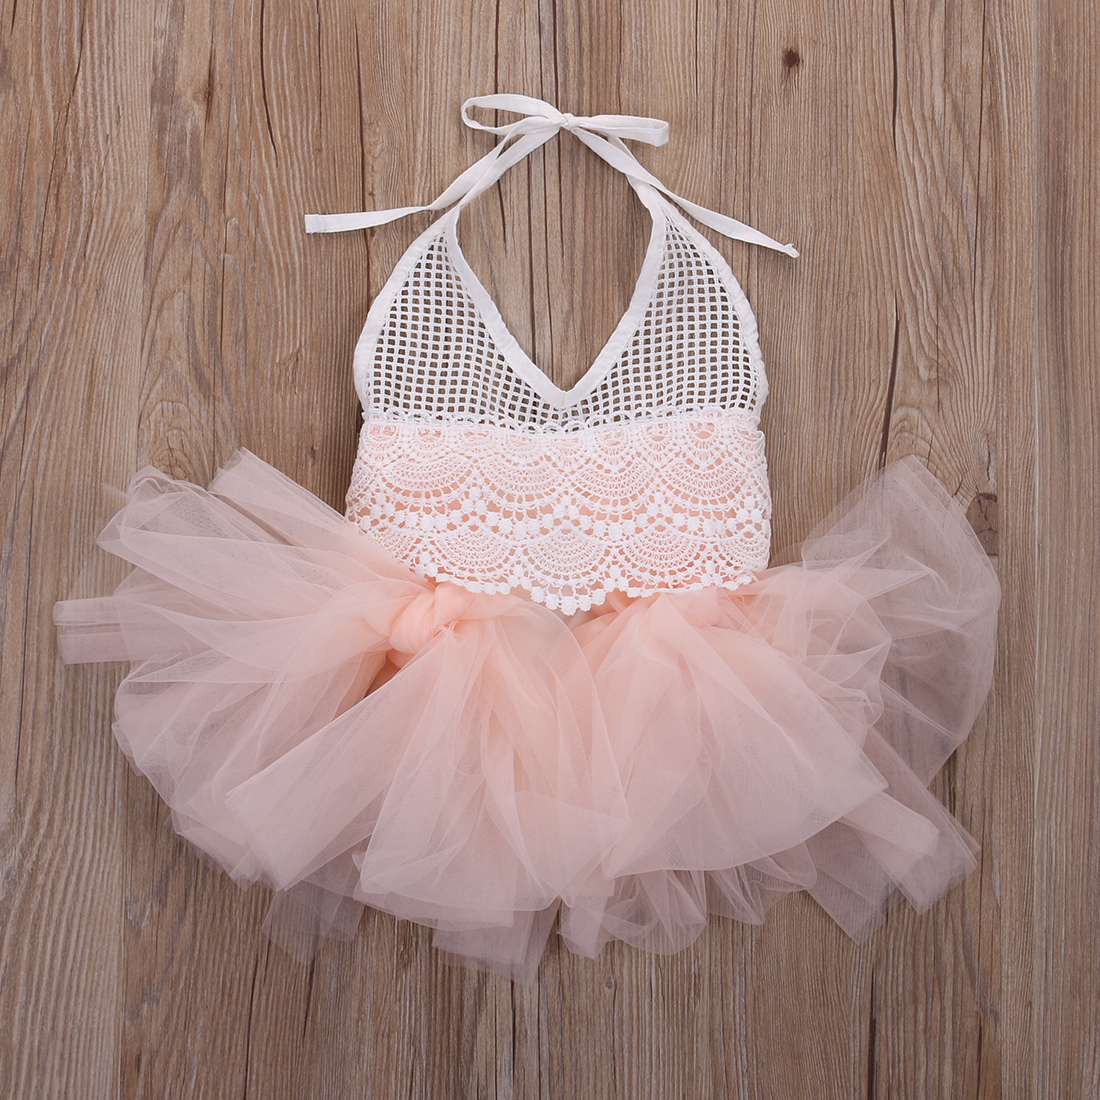 Toddler Baby Boy Romper Newborn Baby Girls Clothes Princess Pink Bow Lace Cartoon ropa bebe Infant Costumes Baby Girl Clothing pink 1st birthday outfits for girls newborn infant lace tutu dress romper set 2017 vestido infantil toddler romper dress clothes